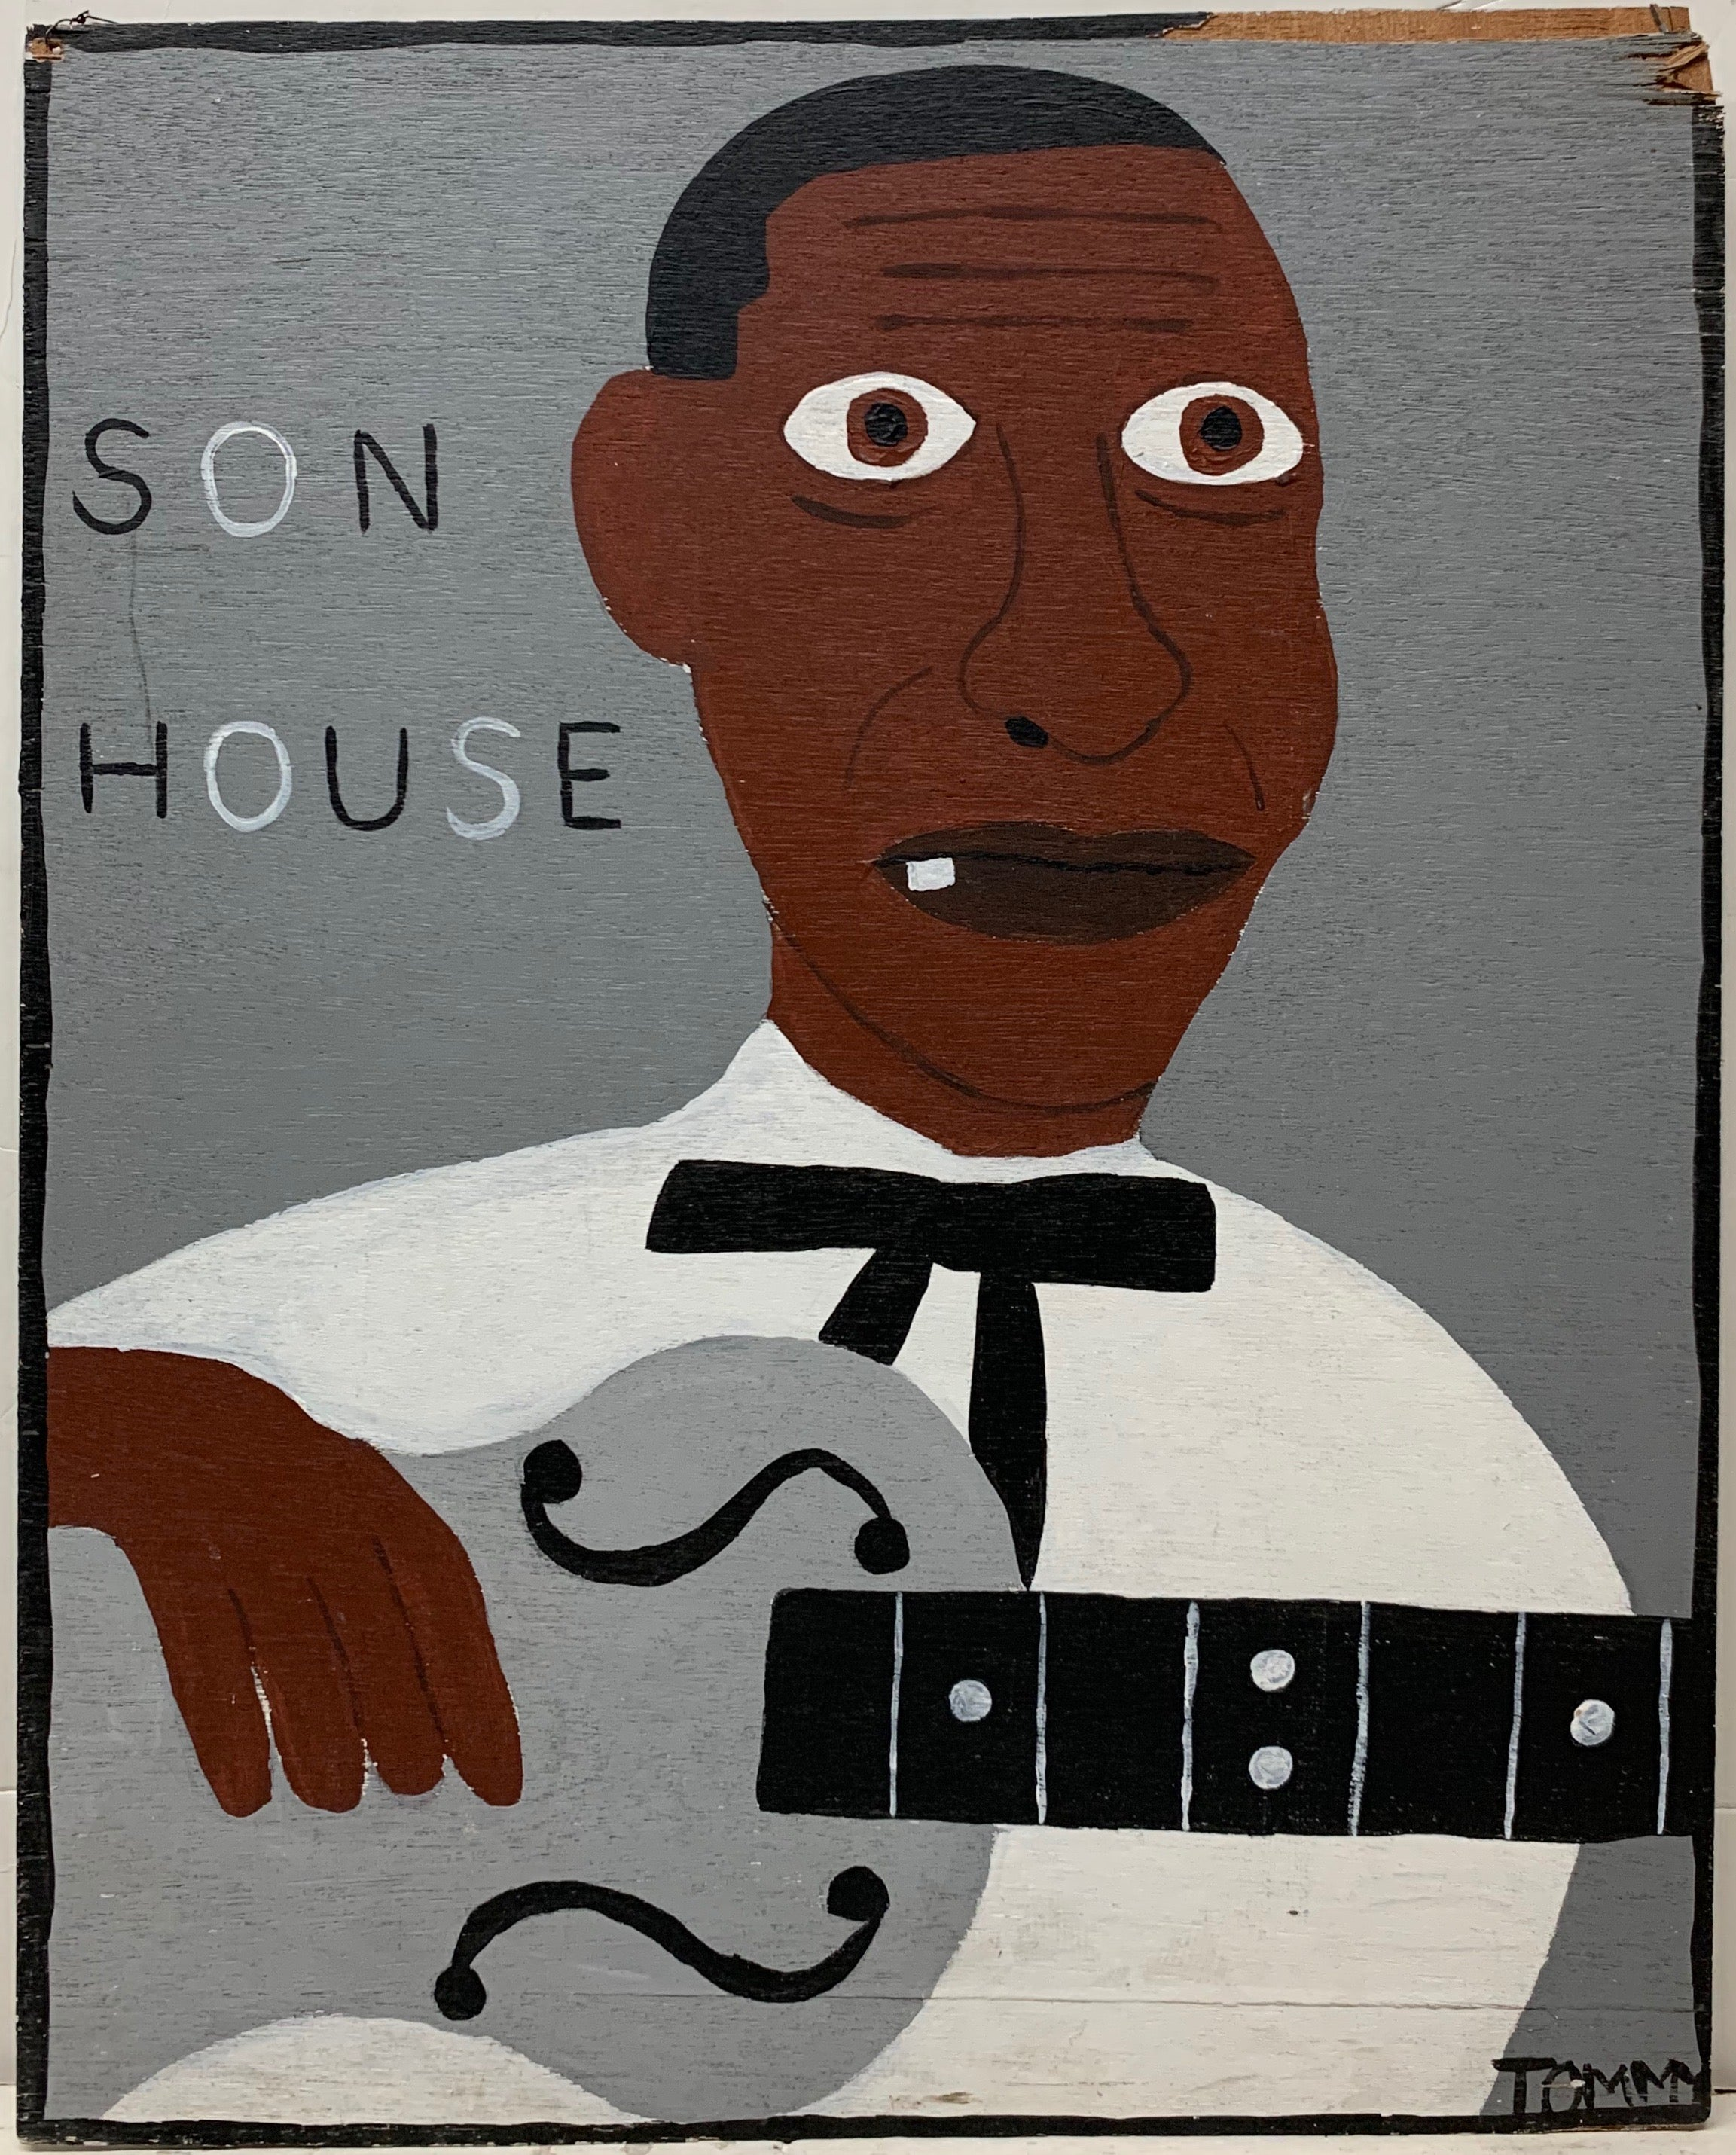 Tommy Cheng portrait of Son House holding a silver guitar.